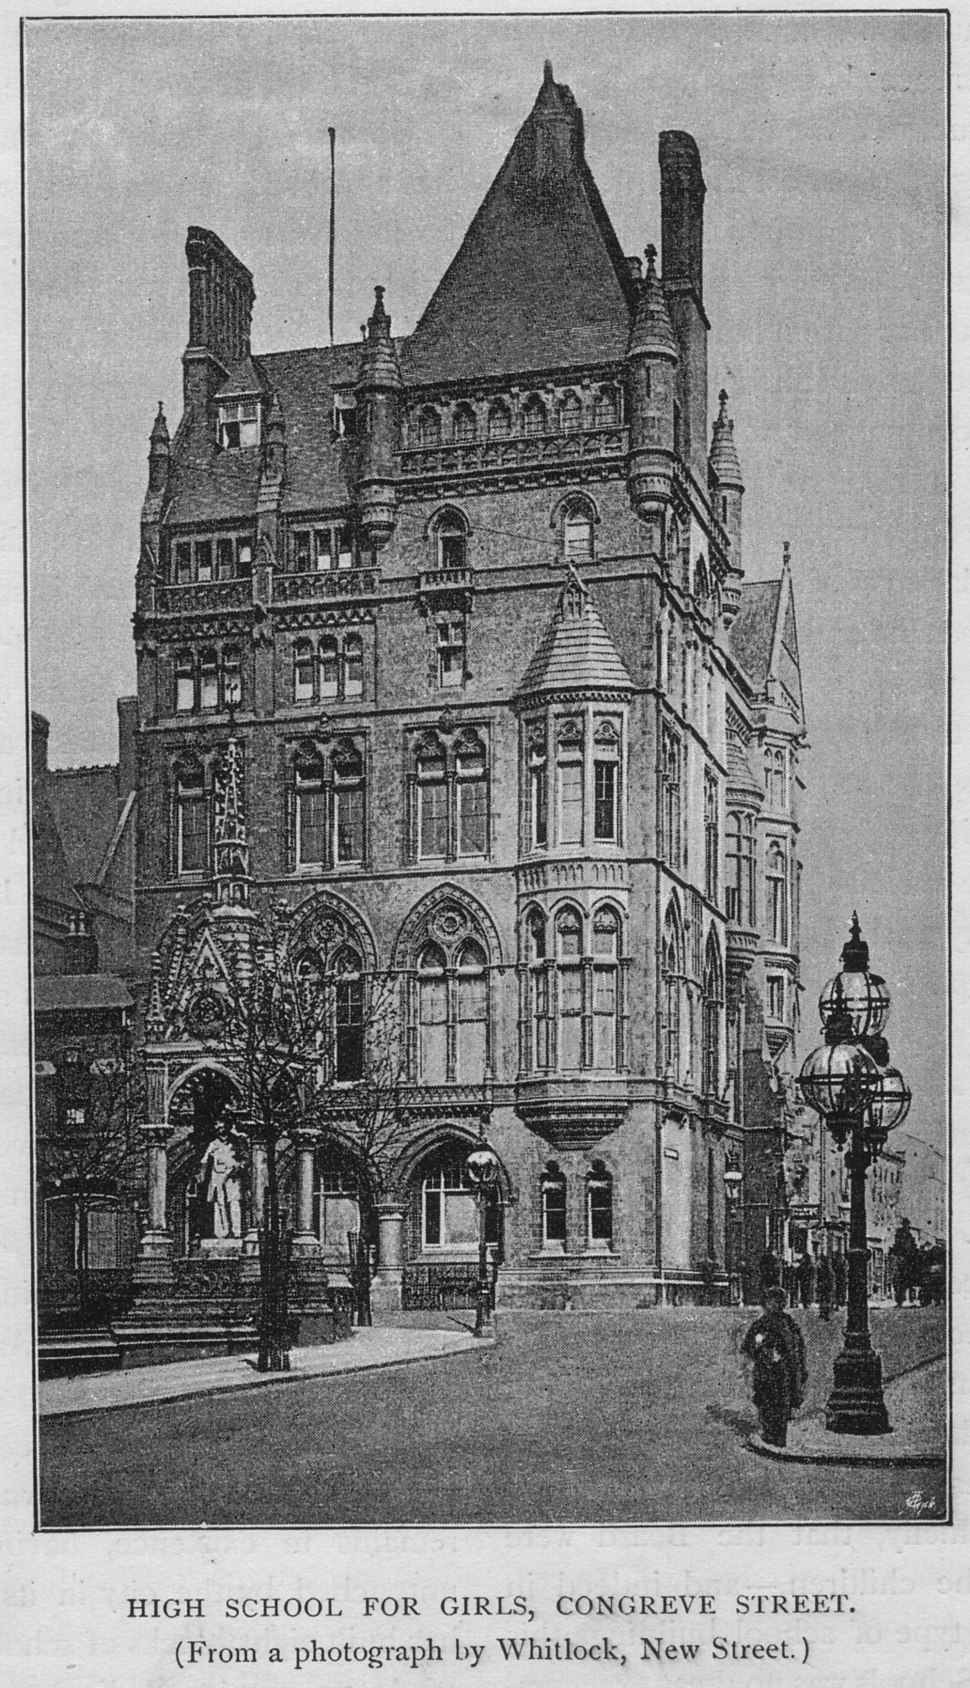 High School for Girls (KEHS), (The old Liberal Club), Congreve Street, Birmingham